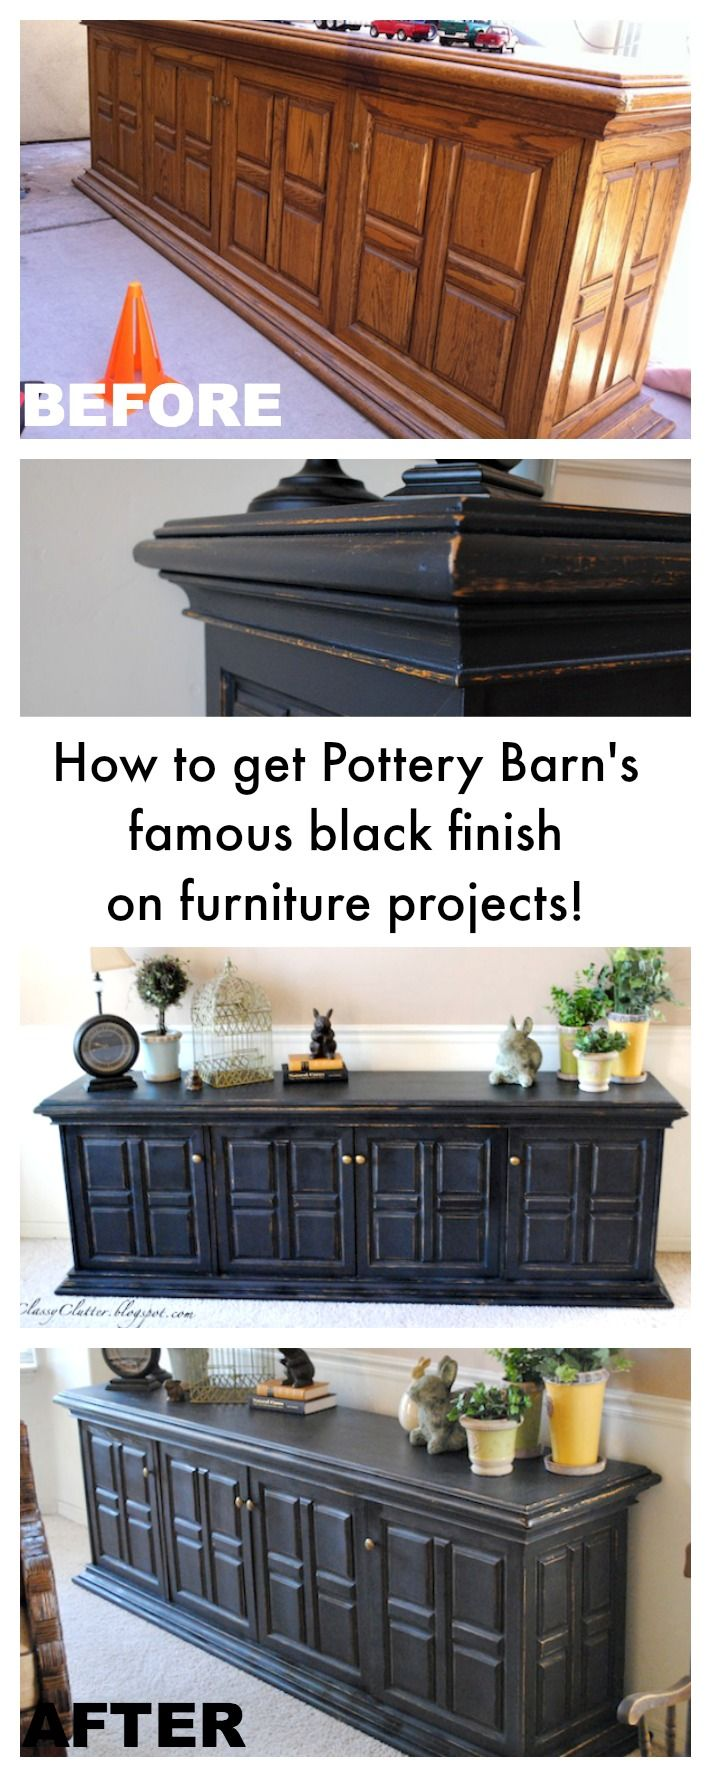 Pottery Barn Black Furniture Finish Tutorial - www.classyclutter.net